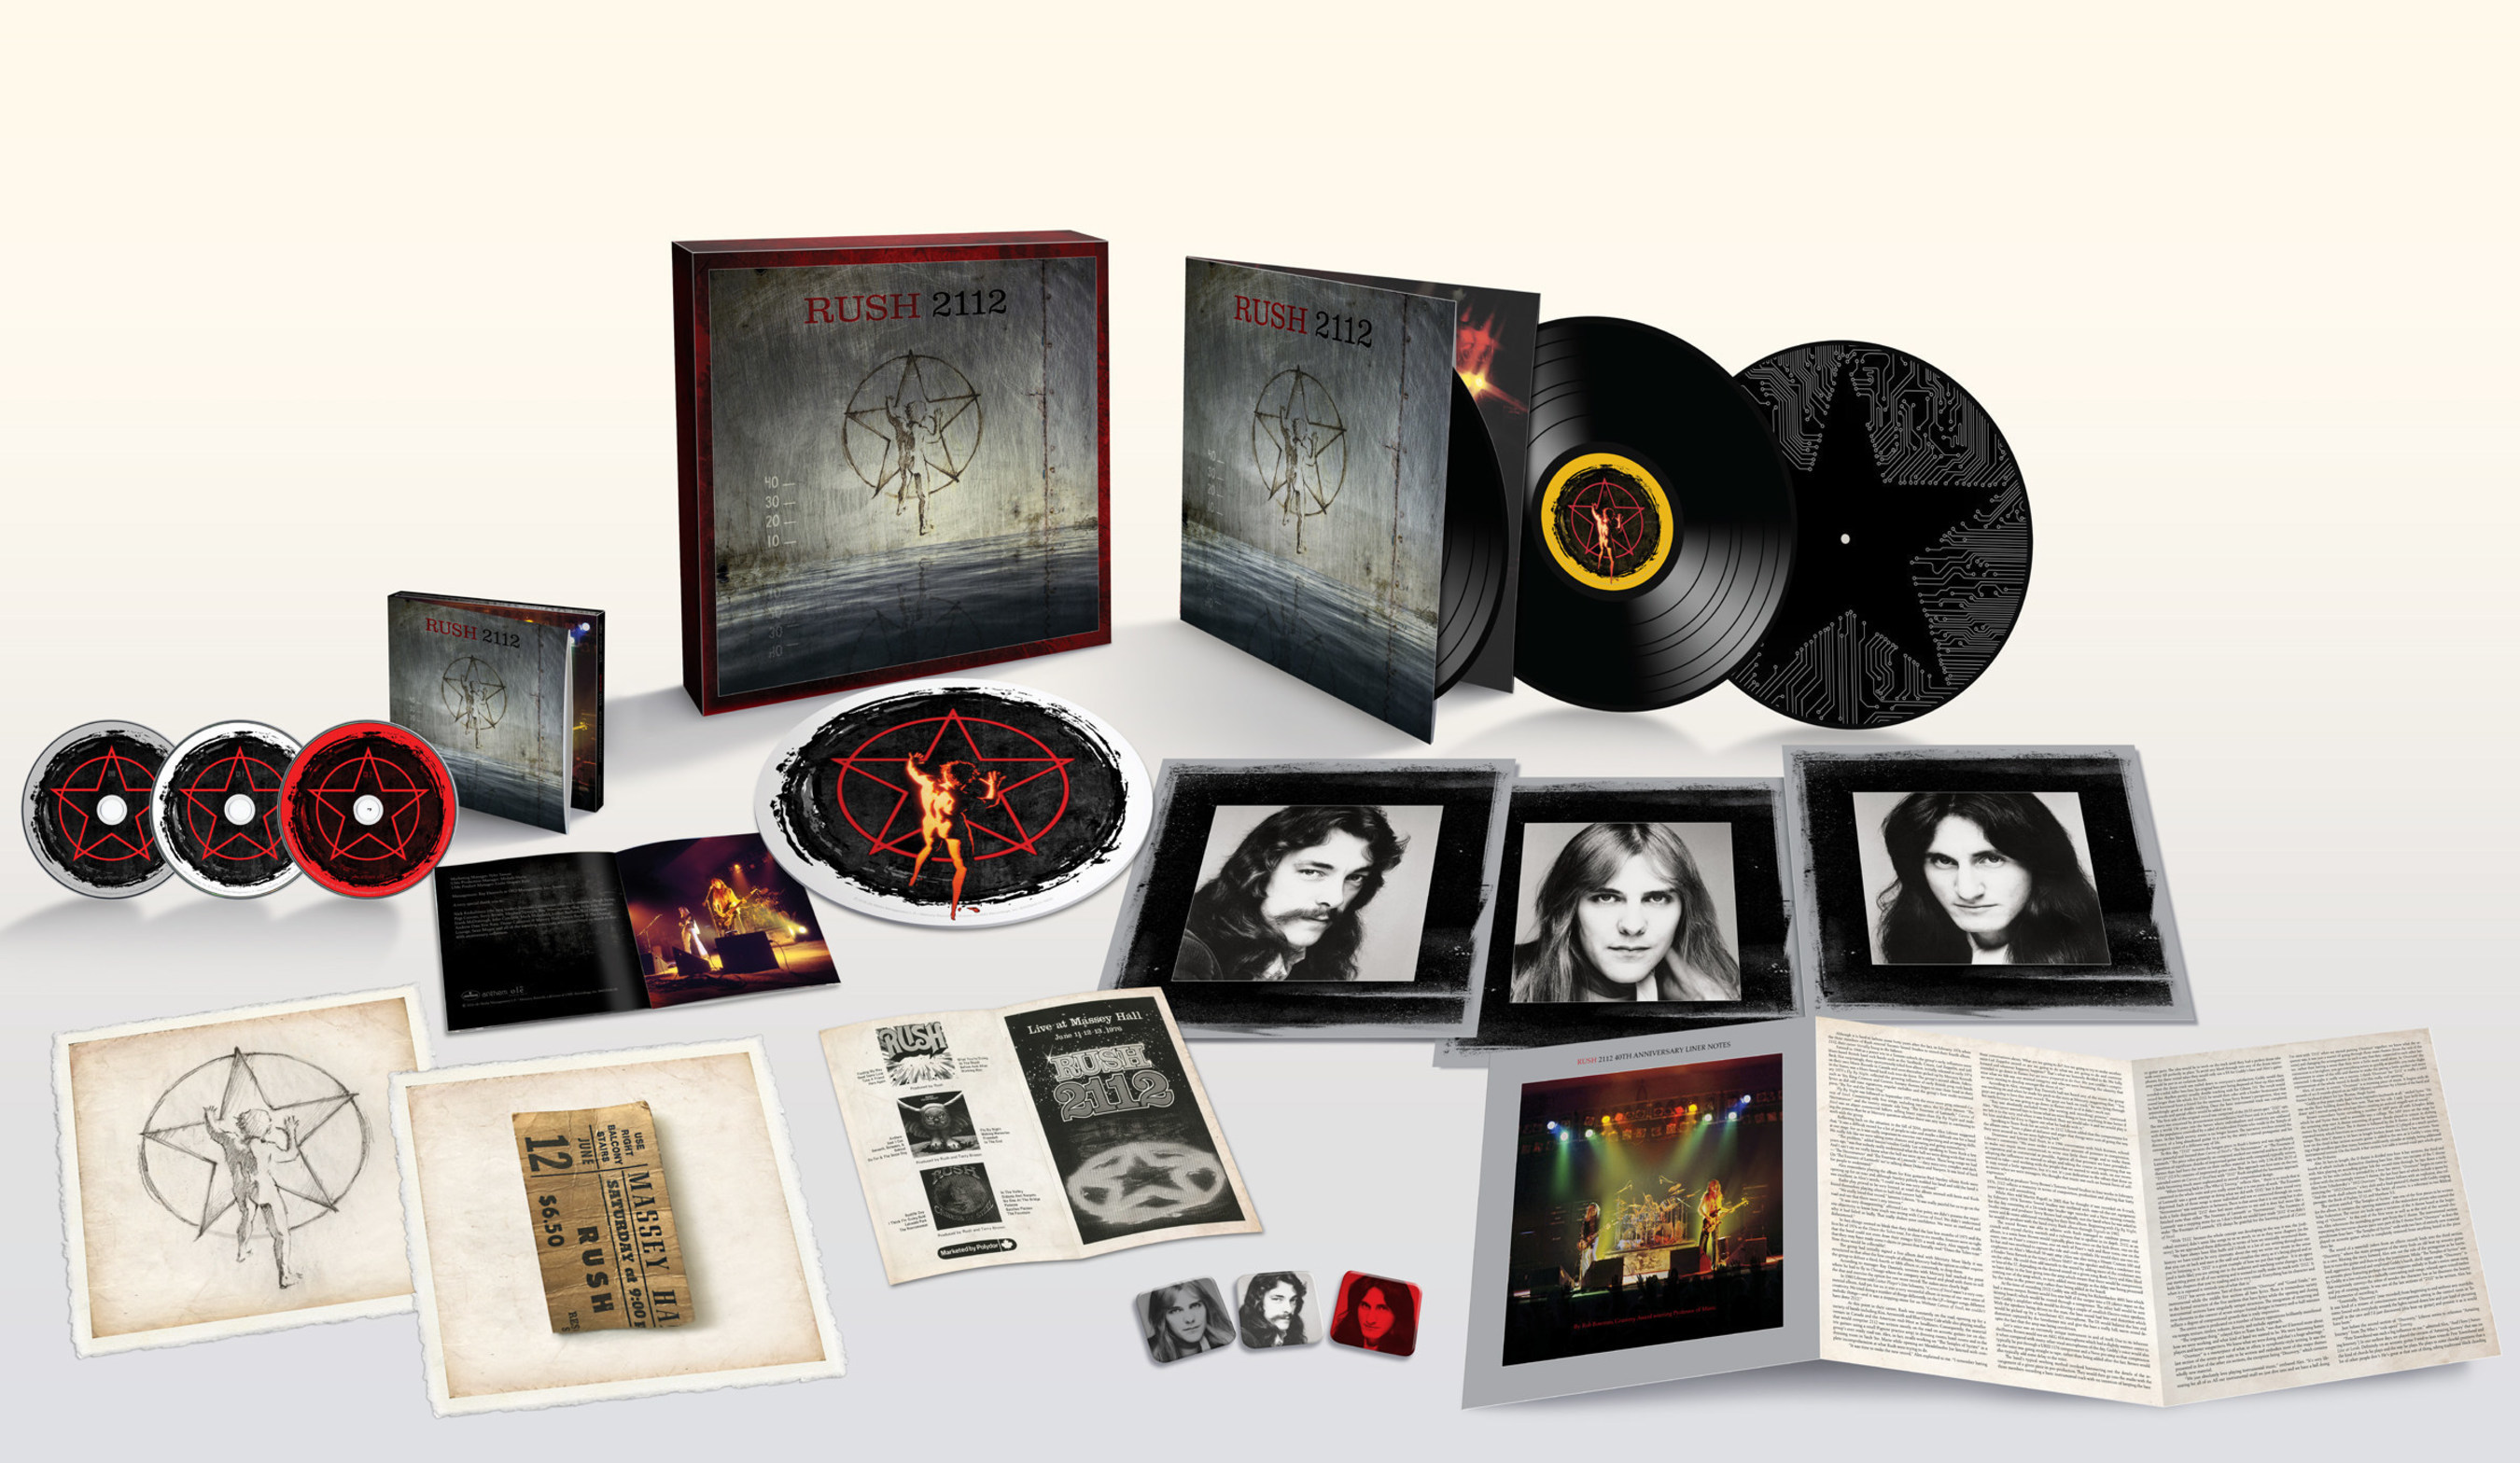 '2112' At 40: Rush Celebrates The 40th Anniversary Of Its Classic '2112' With Expansive 2CD/DVD/3LP Vinyl Packages To Be Released On December 16